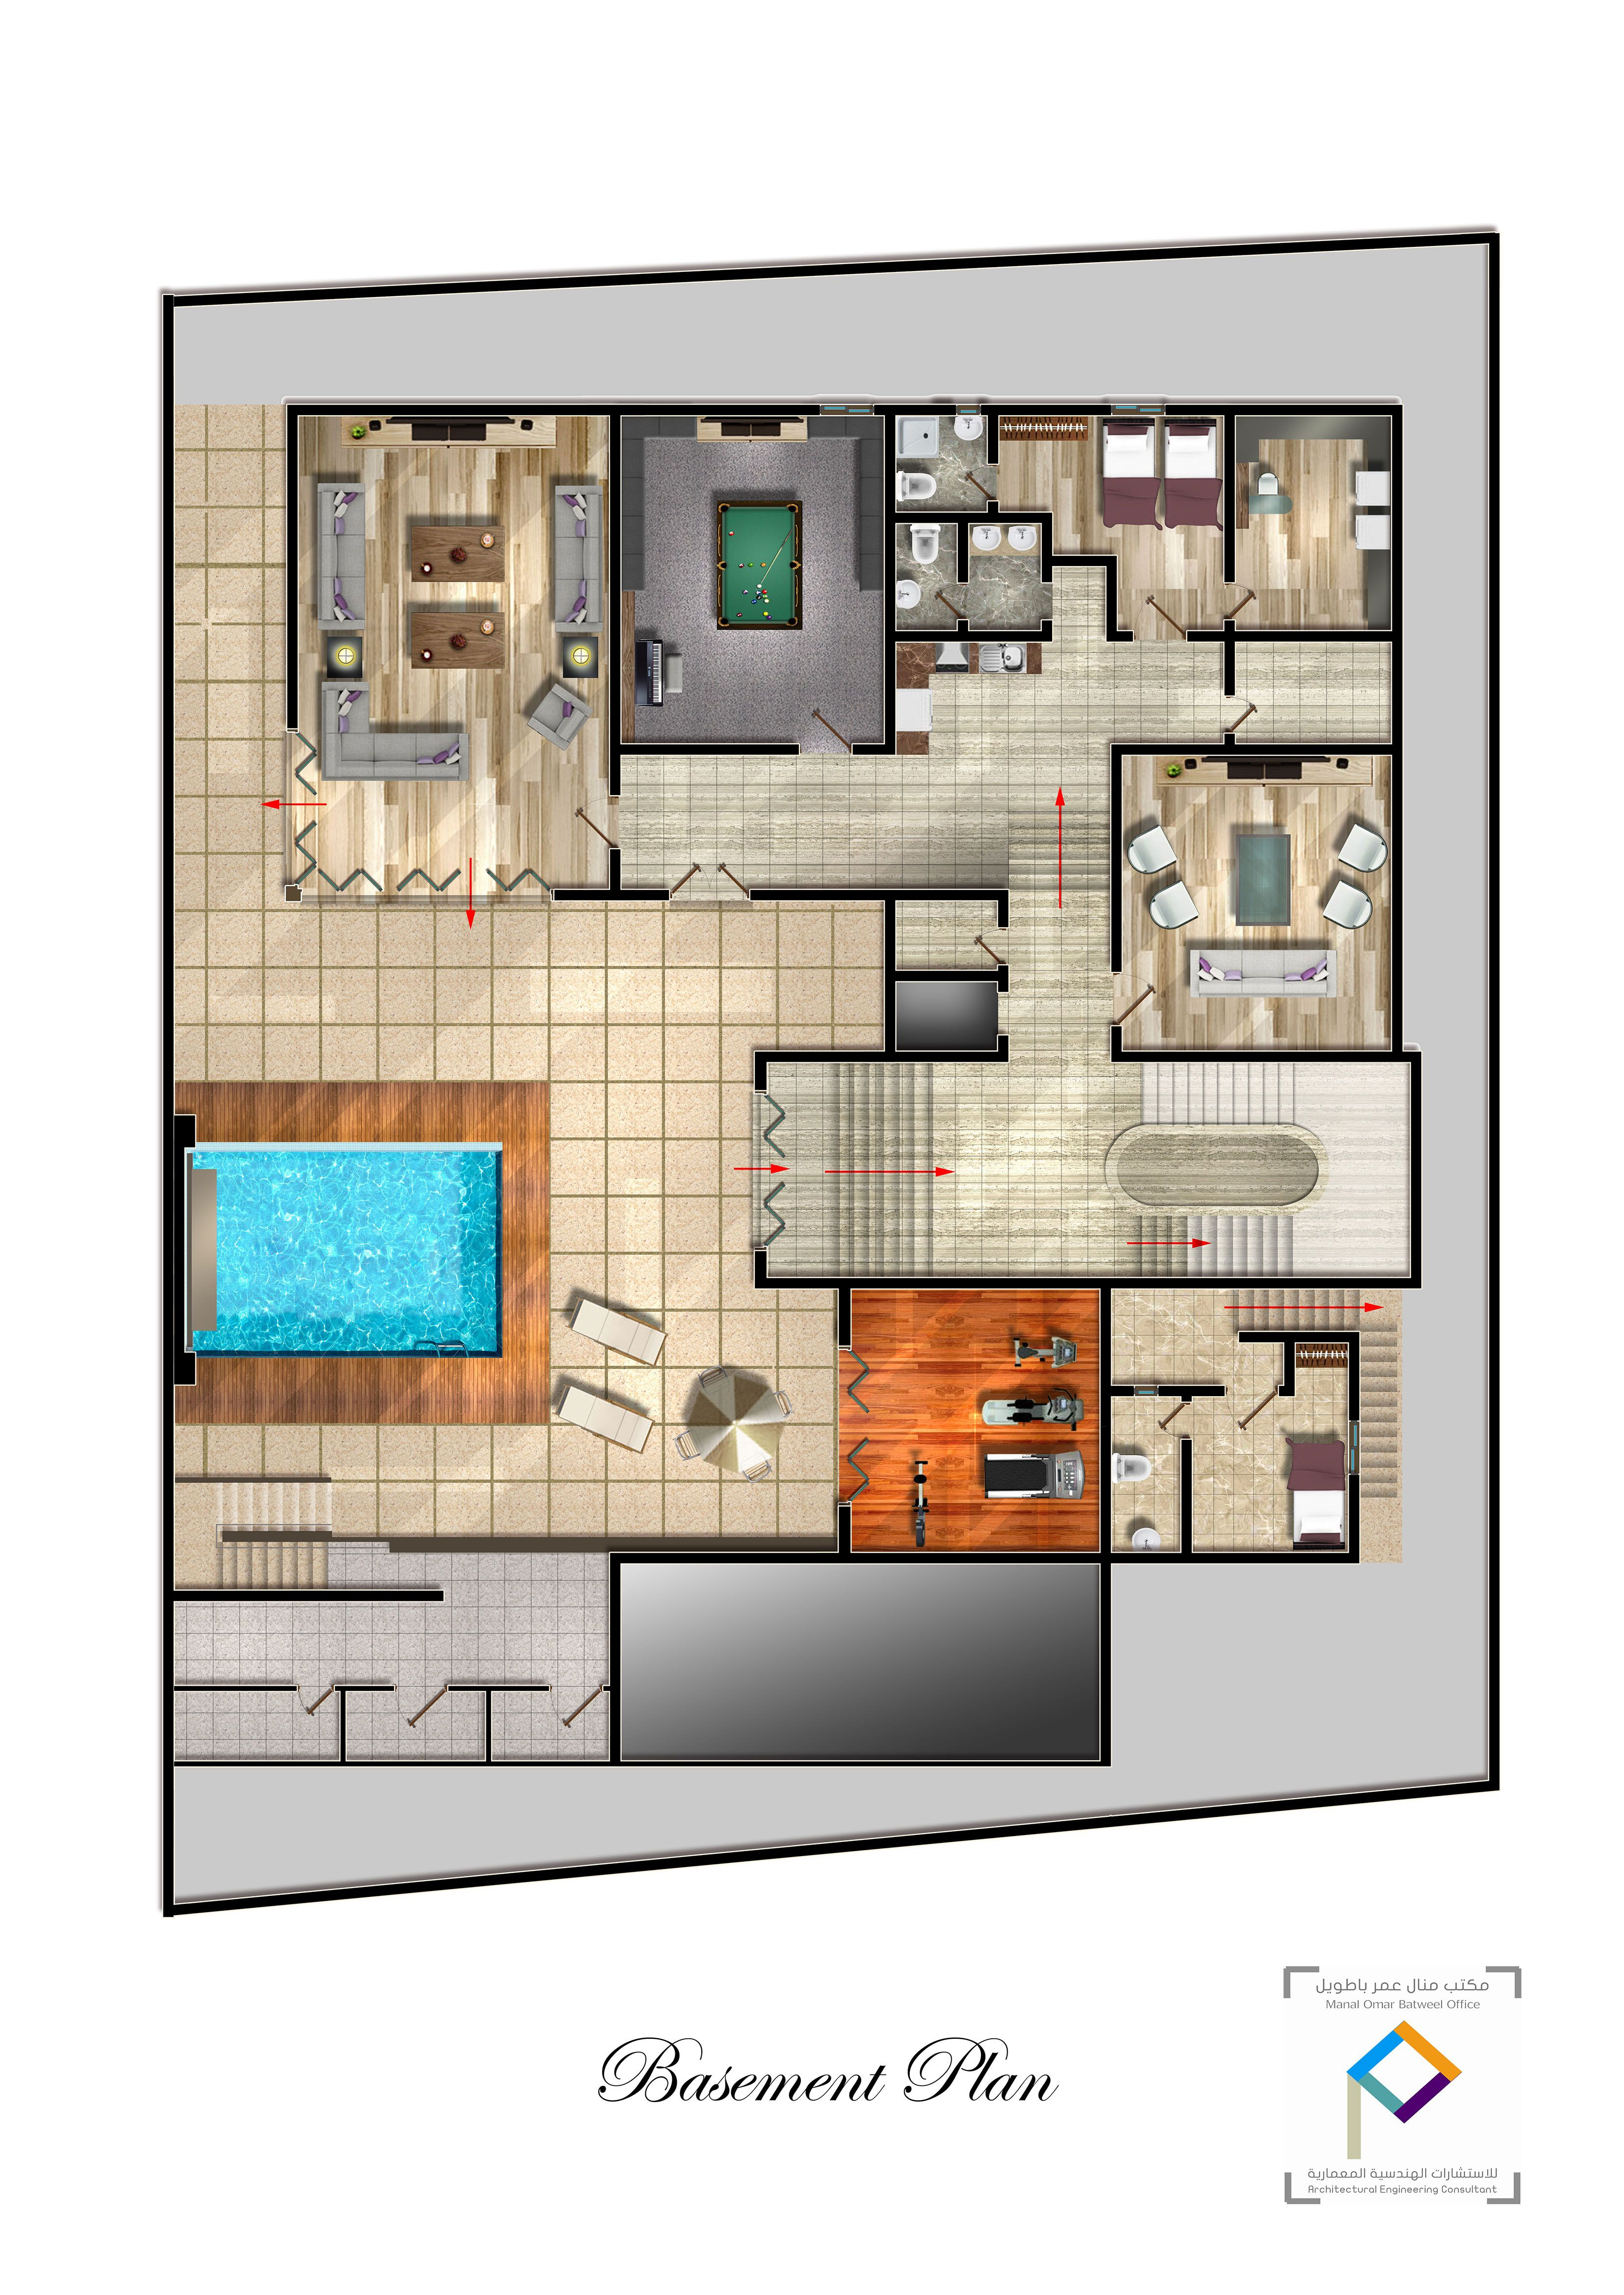 Basement Floor Plan Swimming Pool Pool House Plans Modern House